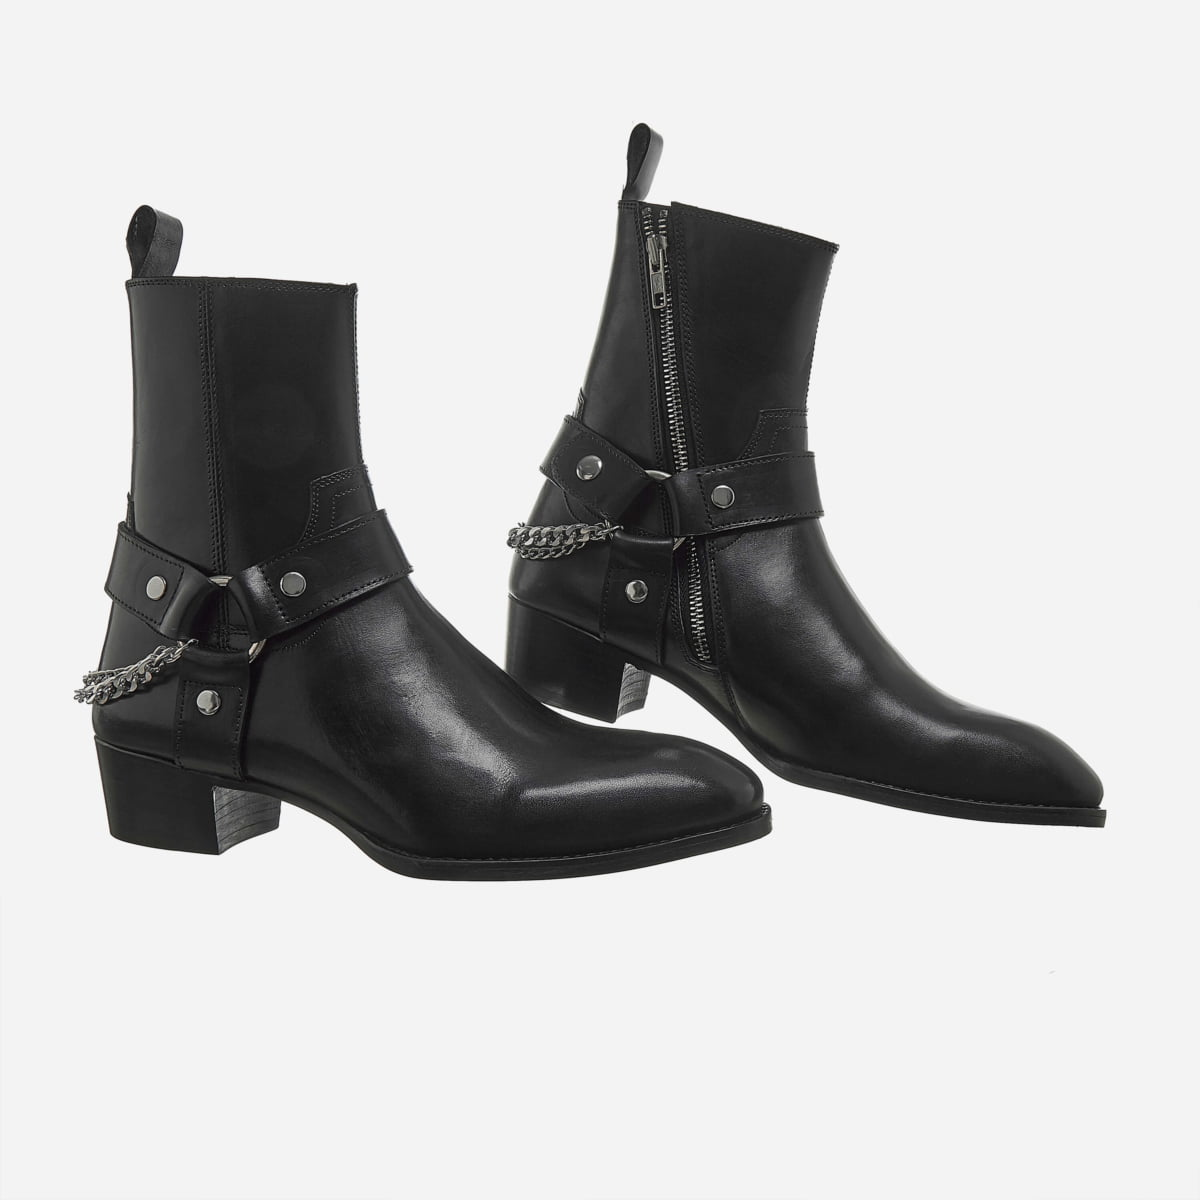 Chain x Harness Boots In Black Chain x Harness Boots In Black SS2020 6